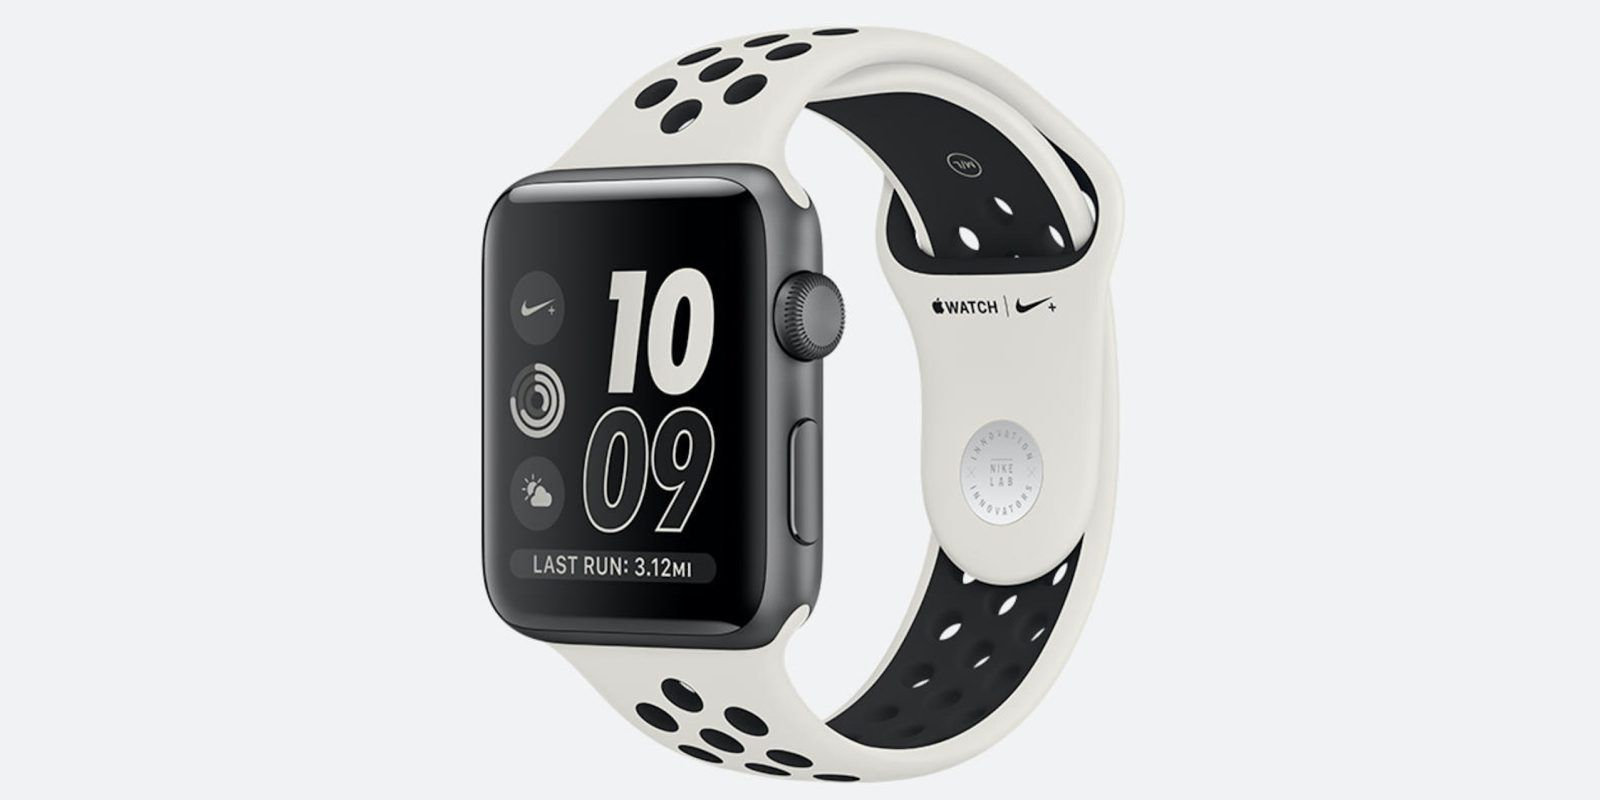 Kgi Apple Watch 3 To Come In Lte And Non Lte Models No Obvious Form Factor Change 9to5mac Apple Watch Nike Apple Watch New Apple Watch